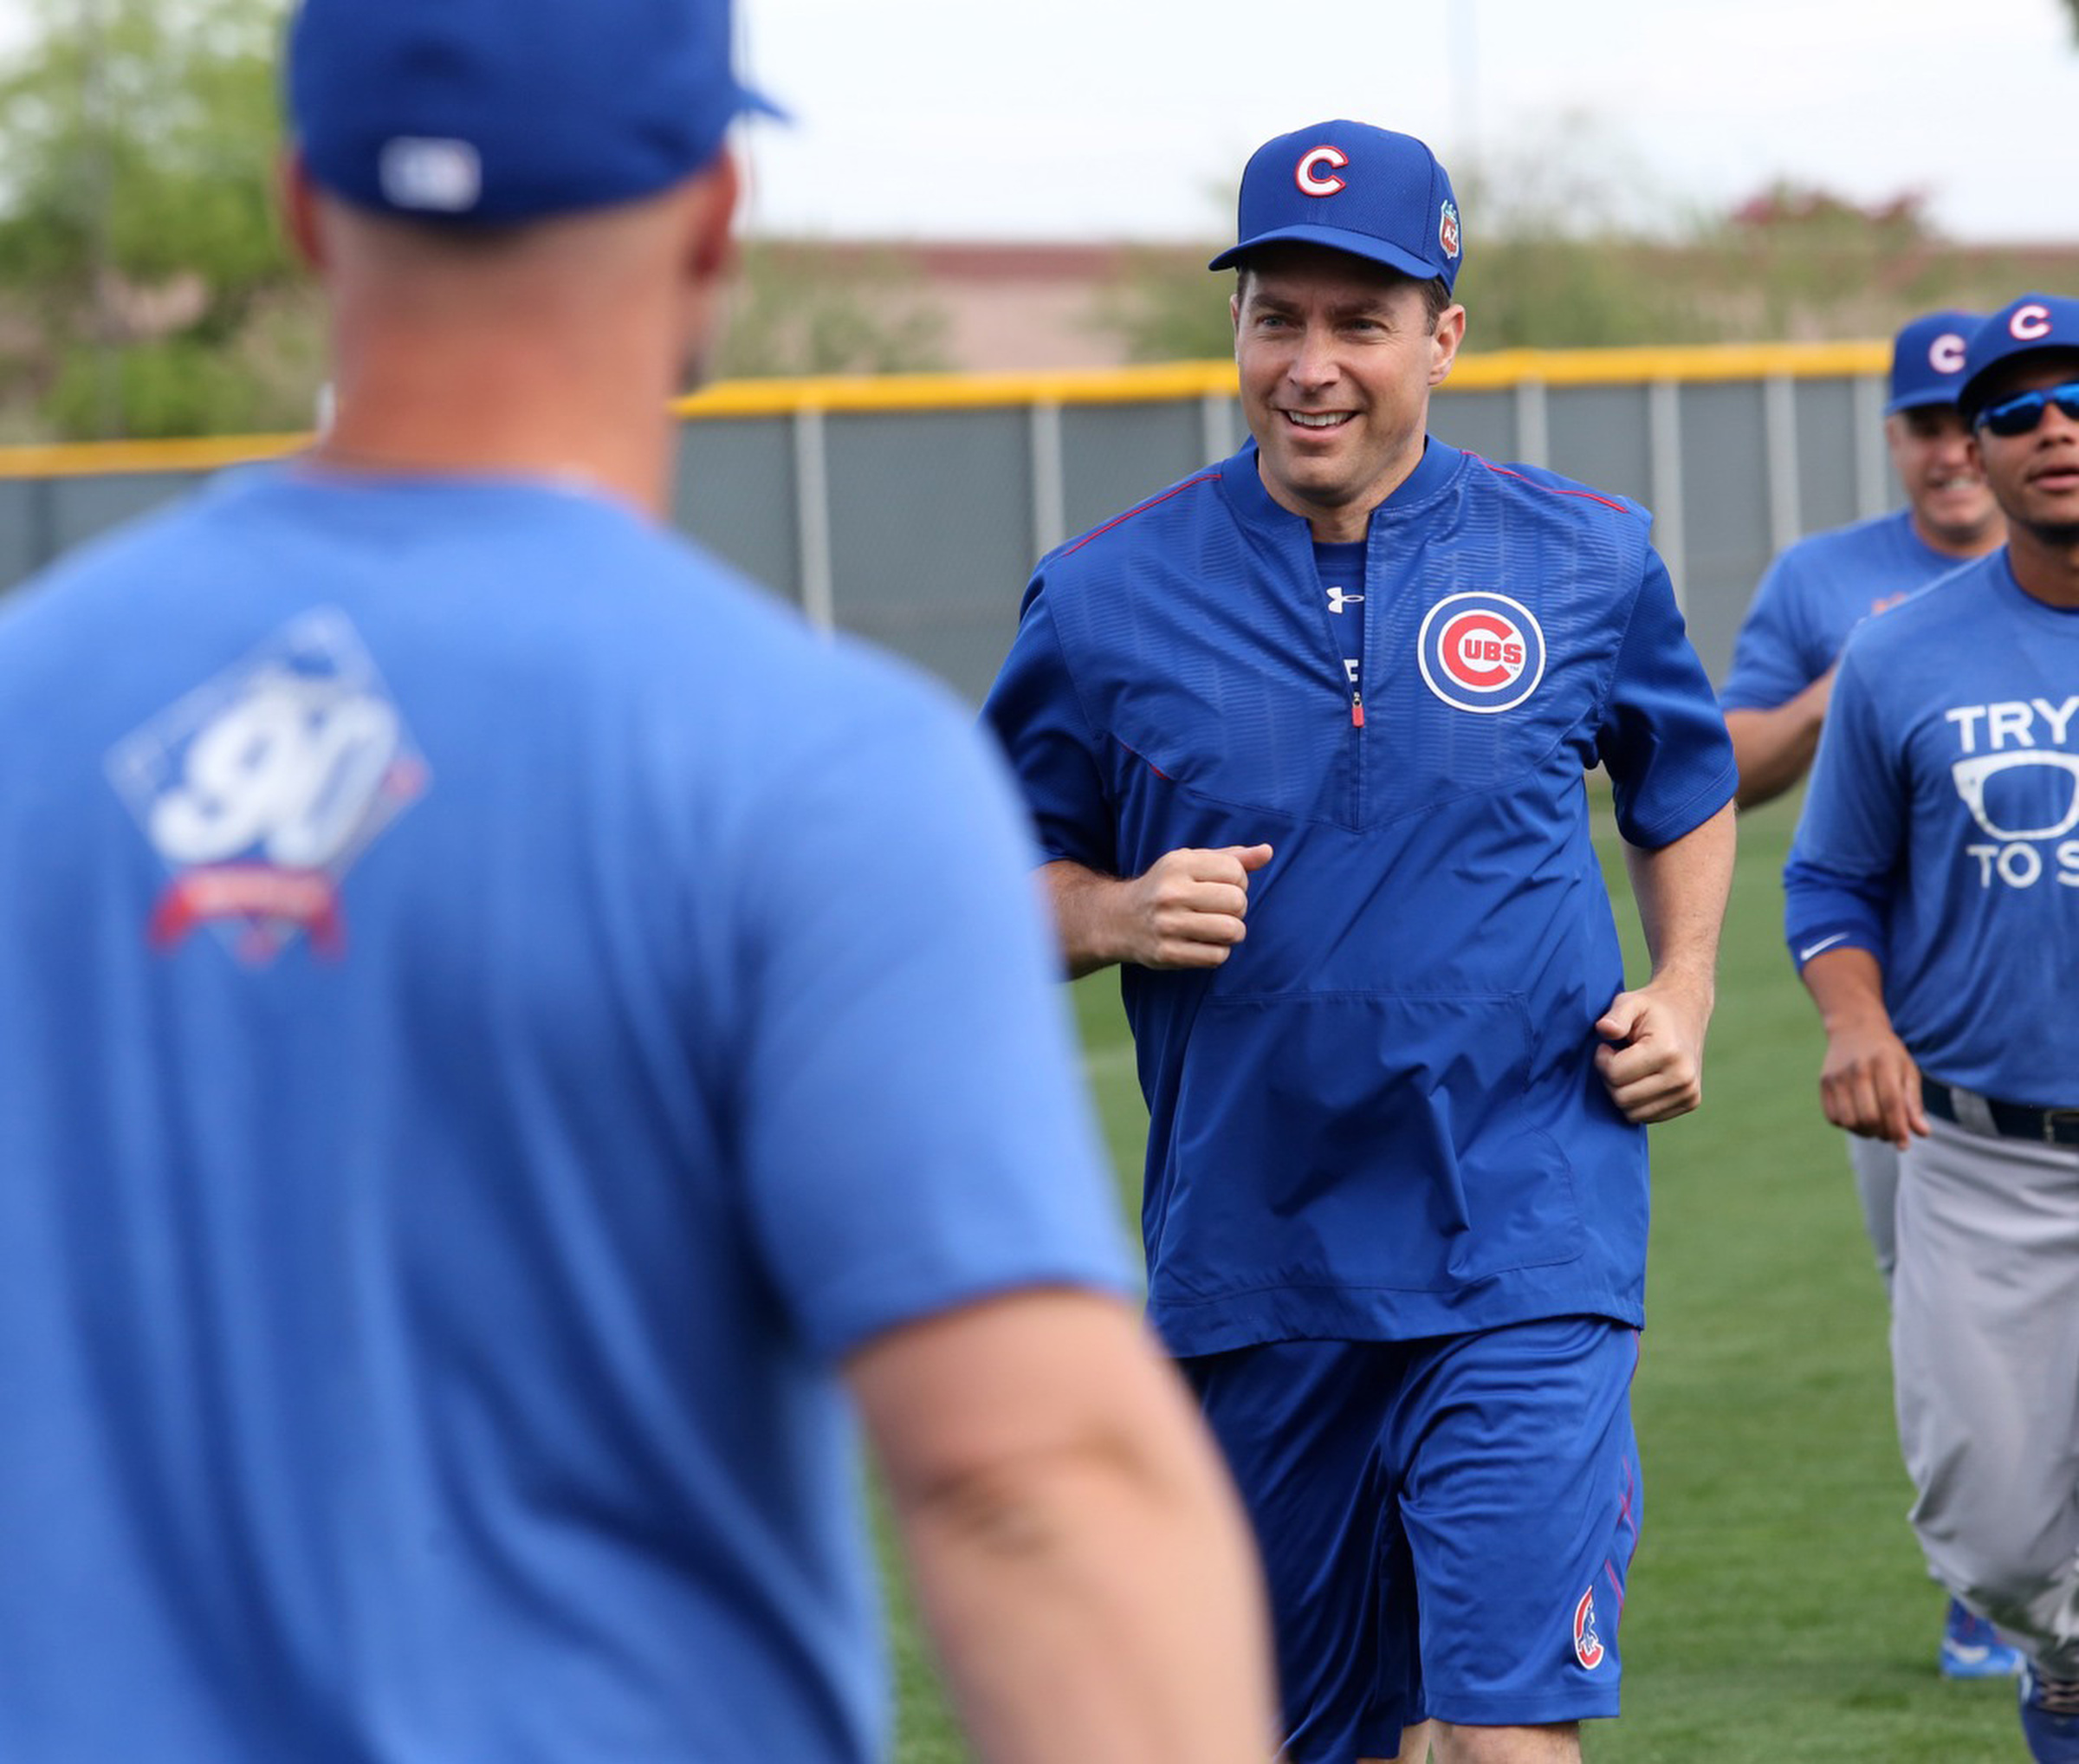 8777024d Father Burke Masters, Chicago Cubs' chaplain, takes part in a practice with  players